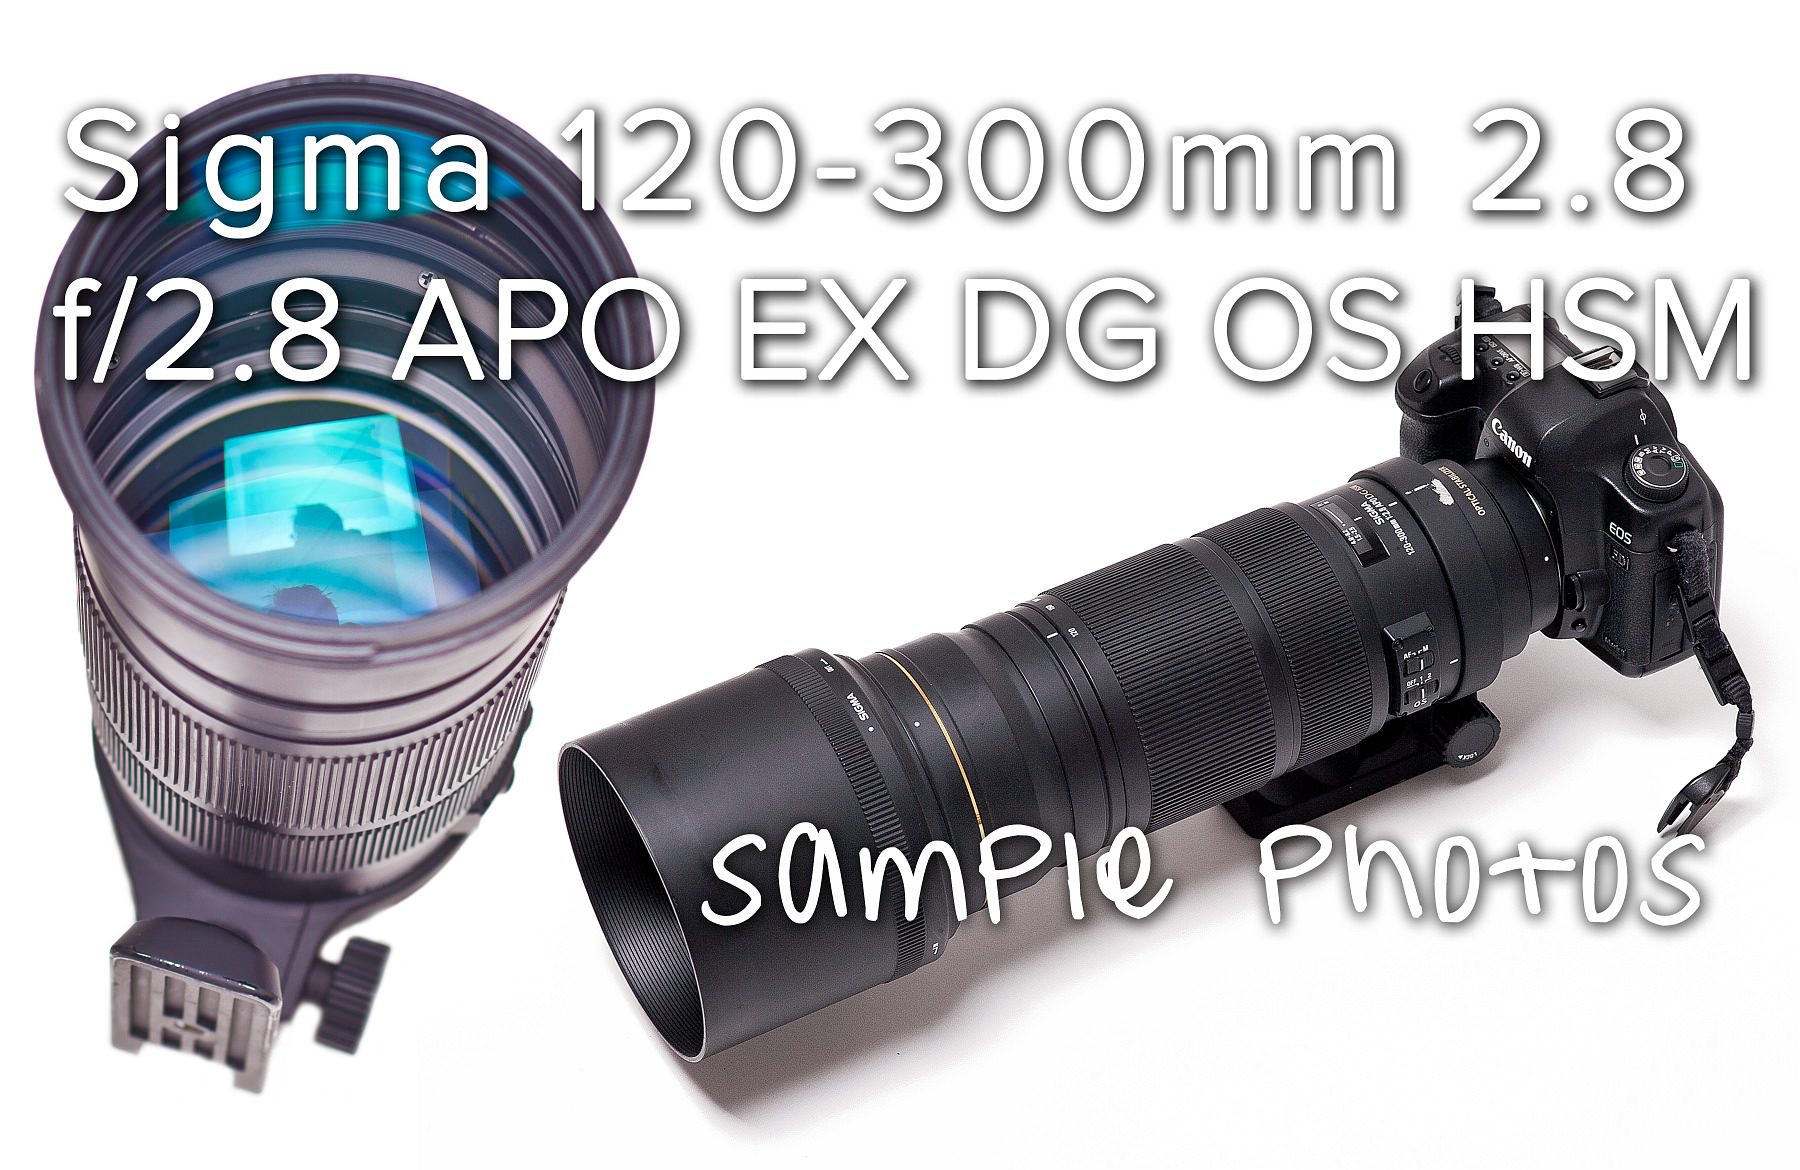 Test photos (51): Sigma 120-300 mm  f/2.8 APO EX DG OS HSM  + Canon 5D Mark II . sample